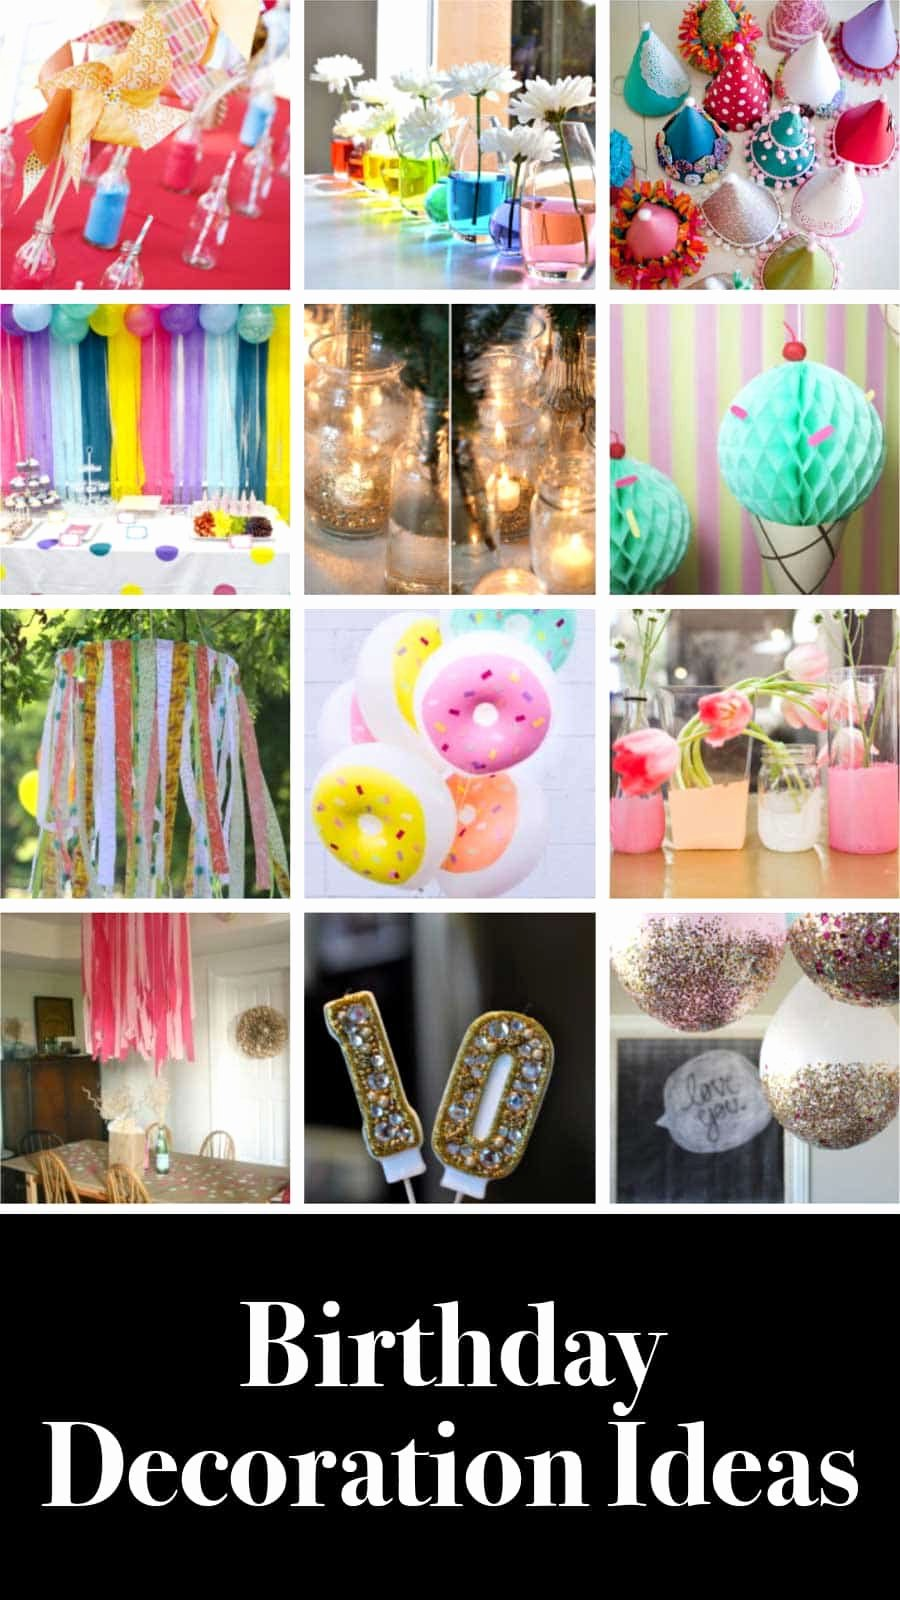 Low Cost Birthday Decoration Ideas Fresh 12 Easy Diy Birthday Decoration Ideas 2020